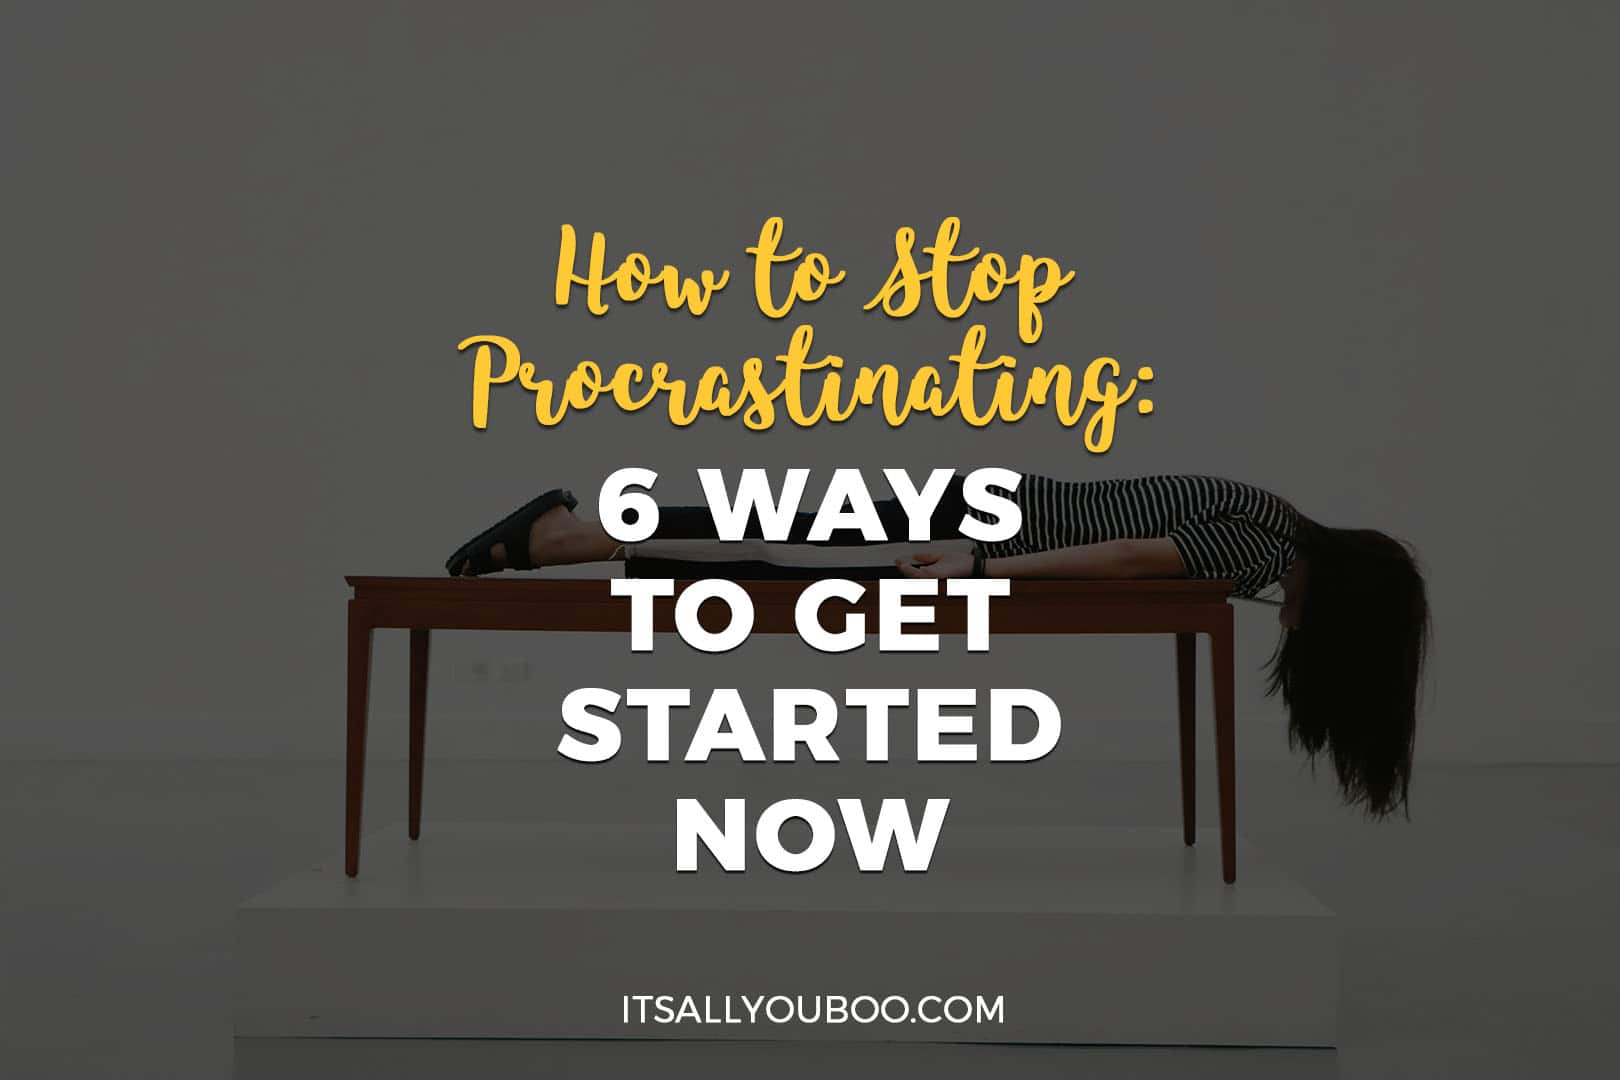 How to Stop Procrastinating: 6 Ways to Get Started Now